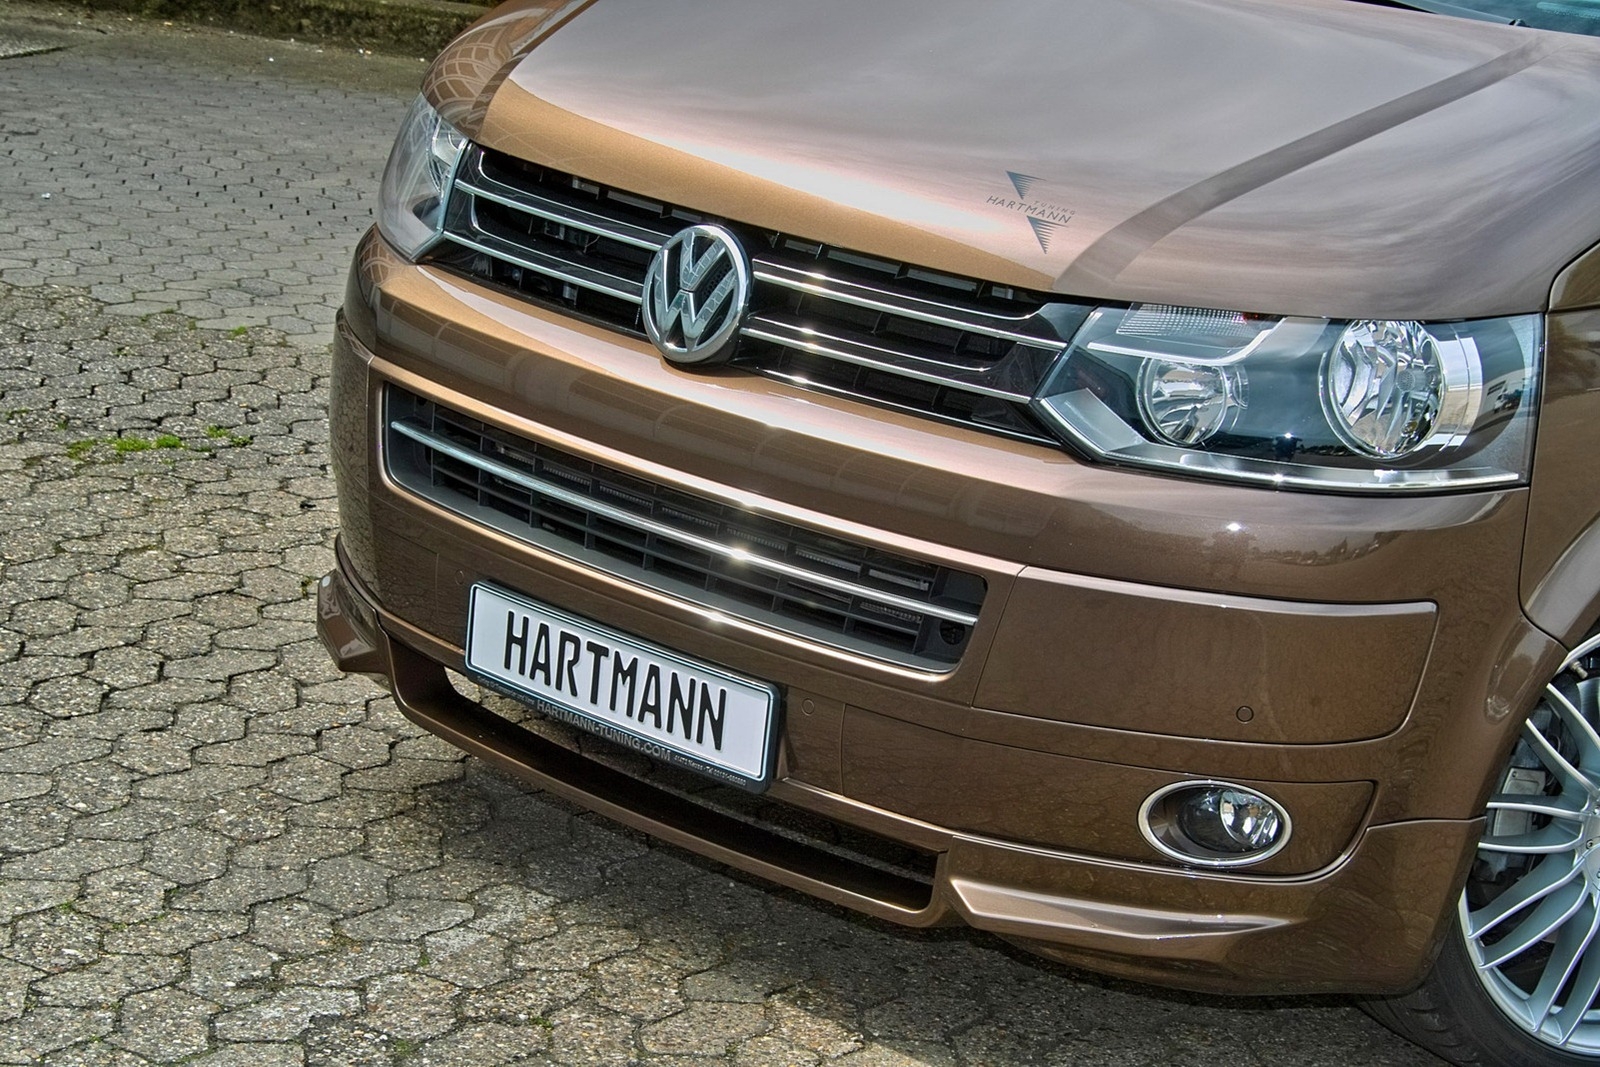 Thorsten Golf 2 Germany 2 moreover 2005 Audi S4 additionally 2015 Mercedes Vito Tourer Tuned By Hartmann in addition Showthread additionally Volvo S40 Turbo Boost Sensor Location. on hartmann s on a passat